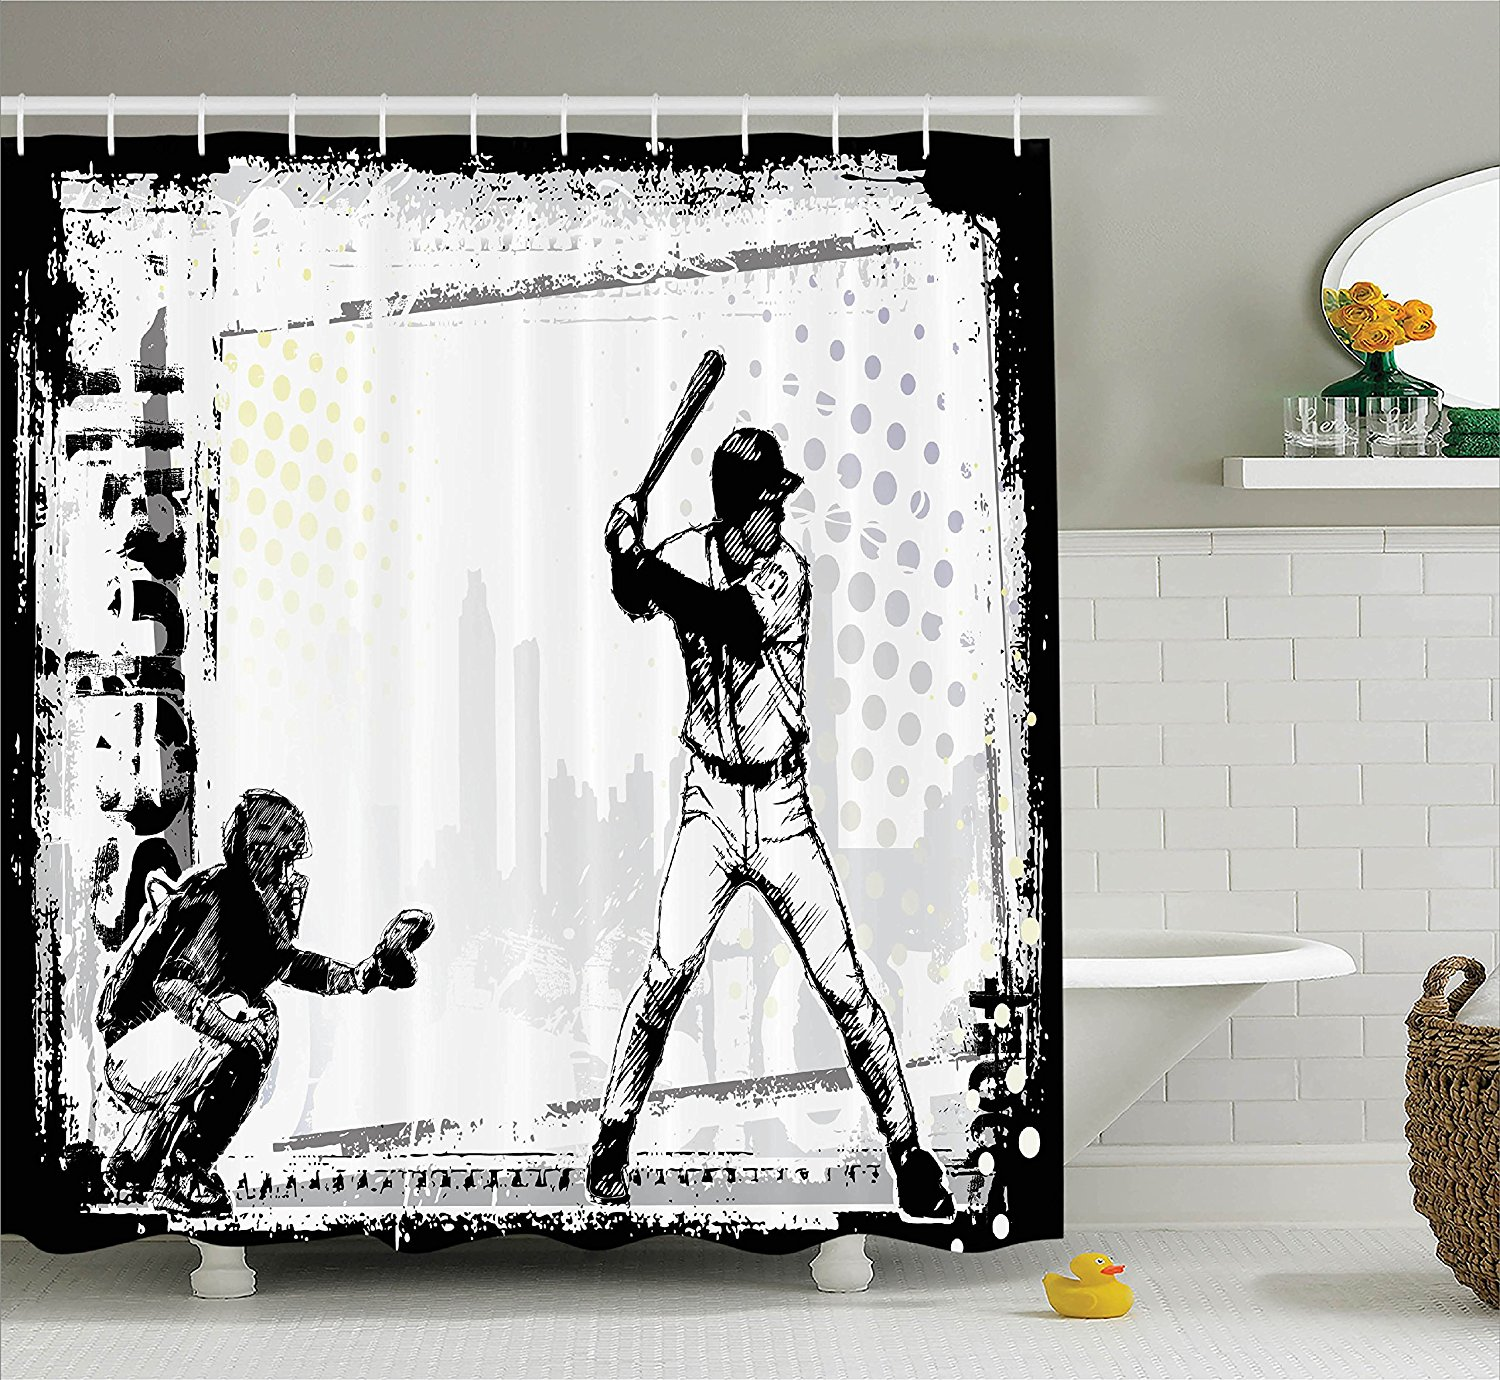 Sports shower curtain - Warm Tour Sports Baseball Themed American Sport Team Shower Curtain Polyester Curtain Hospital Hotel With